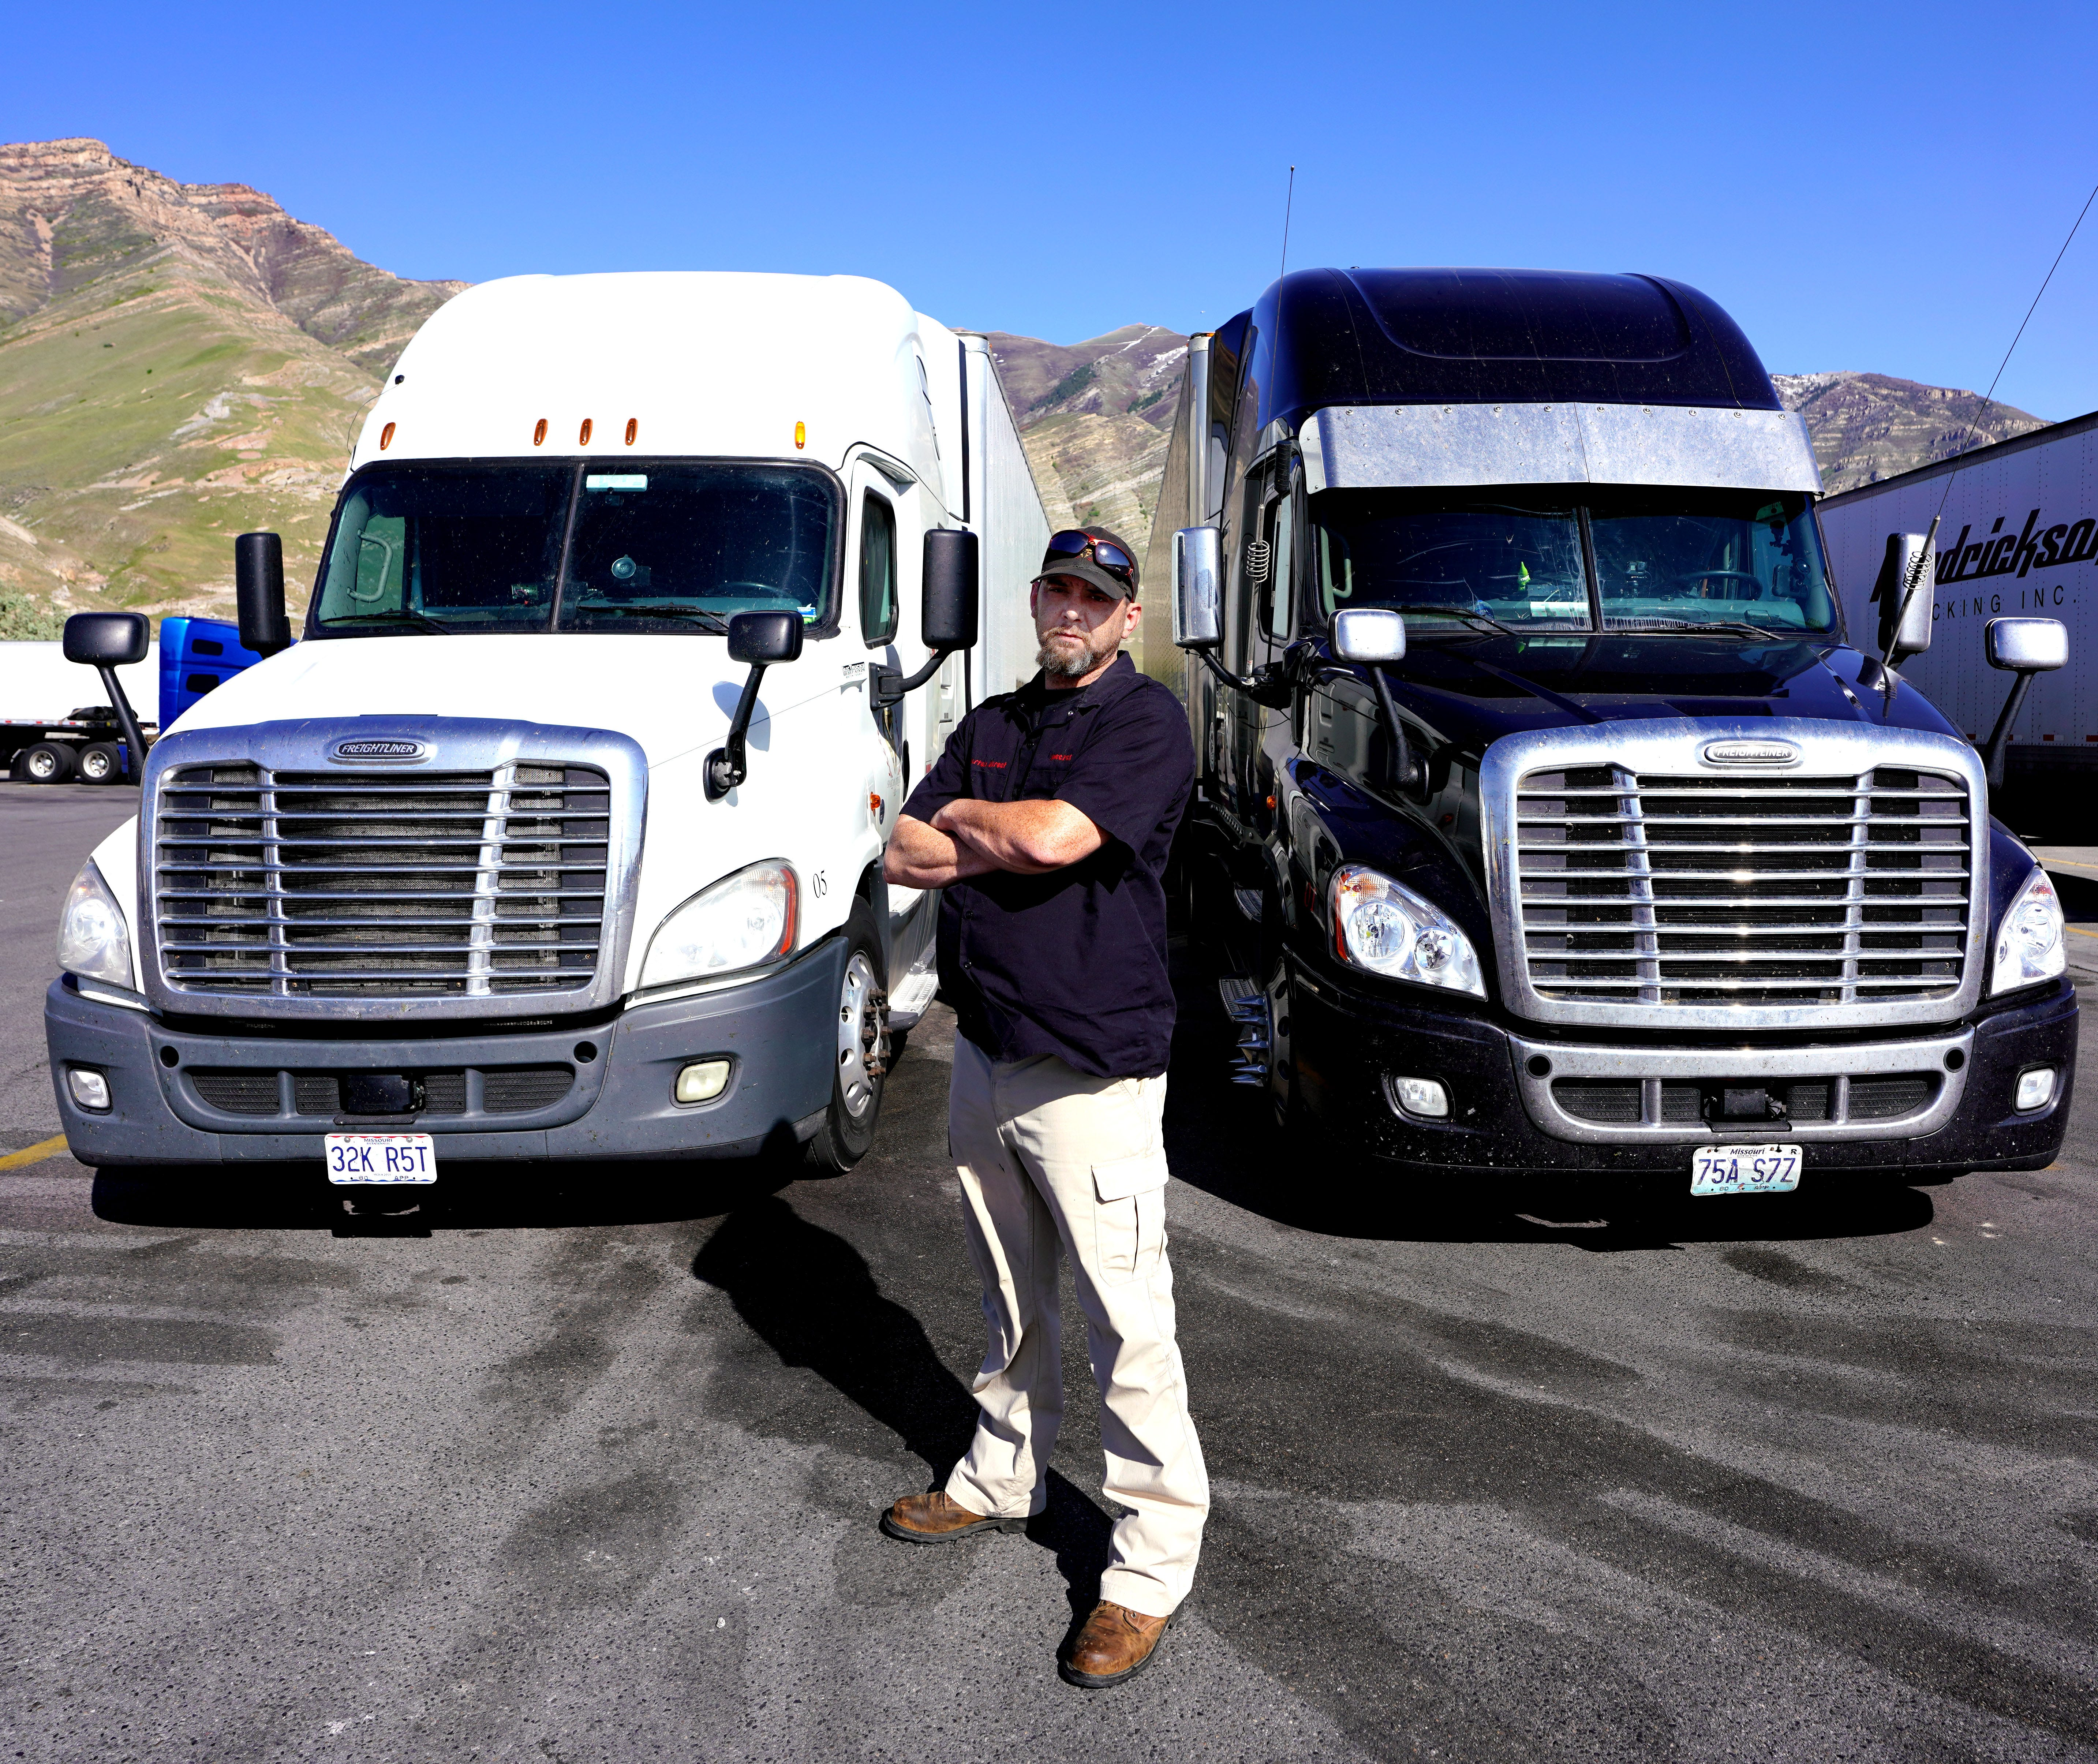 Trucker James Rodgers stands in front of two of his trucks at a truck stop outside Salt Lake City.